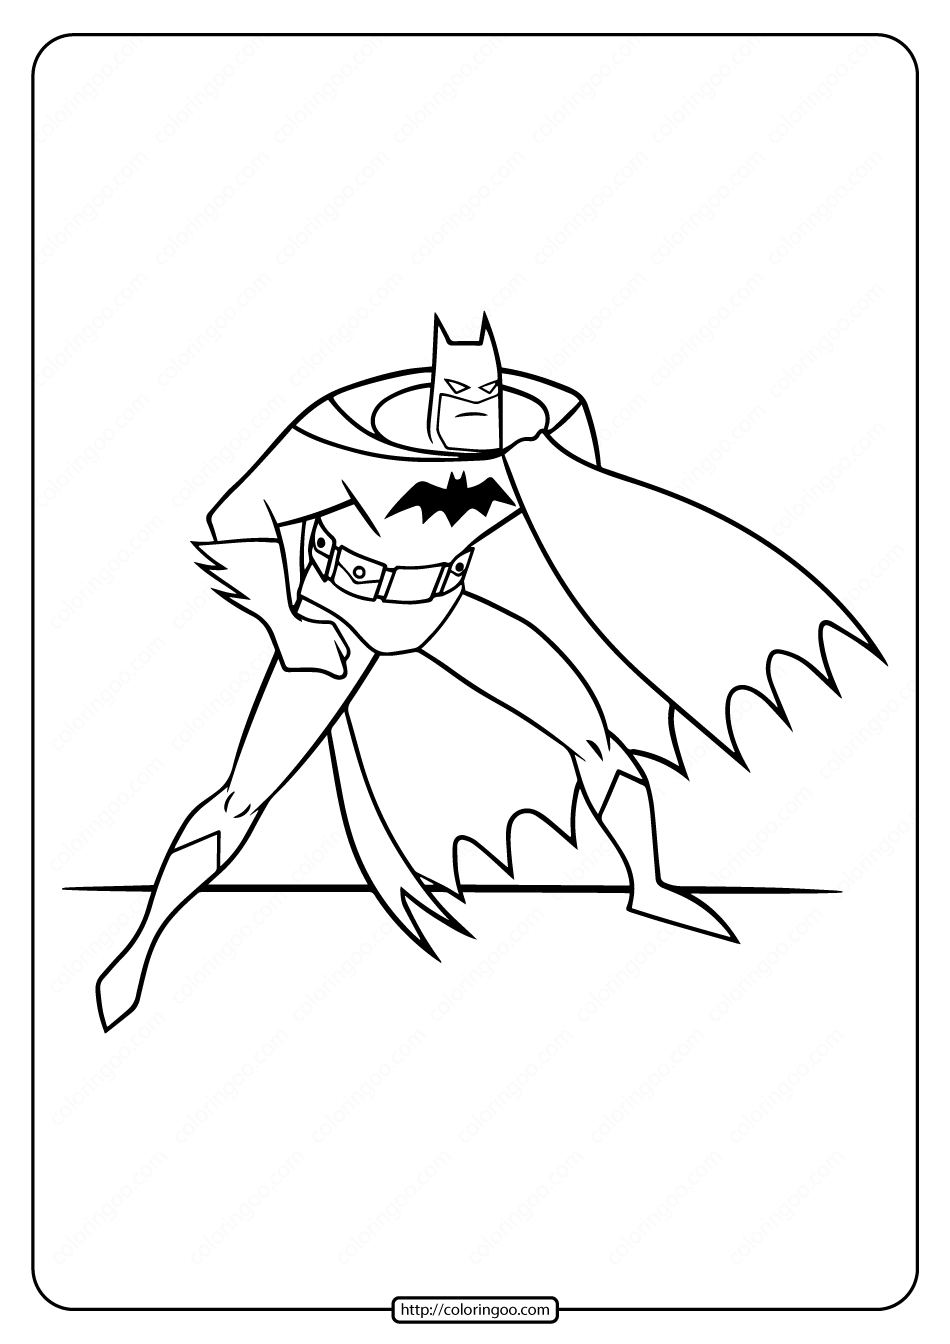 Printable Batman Coloring Pages for Boys